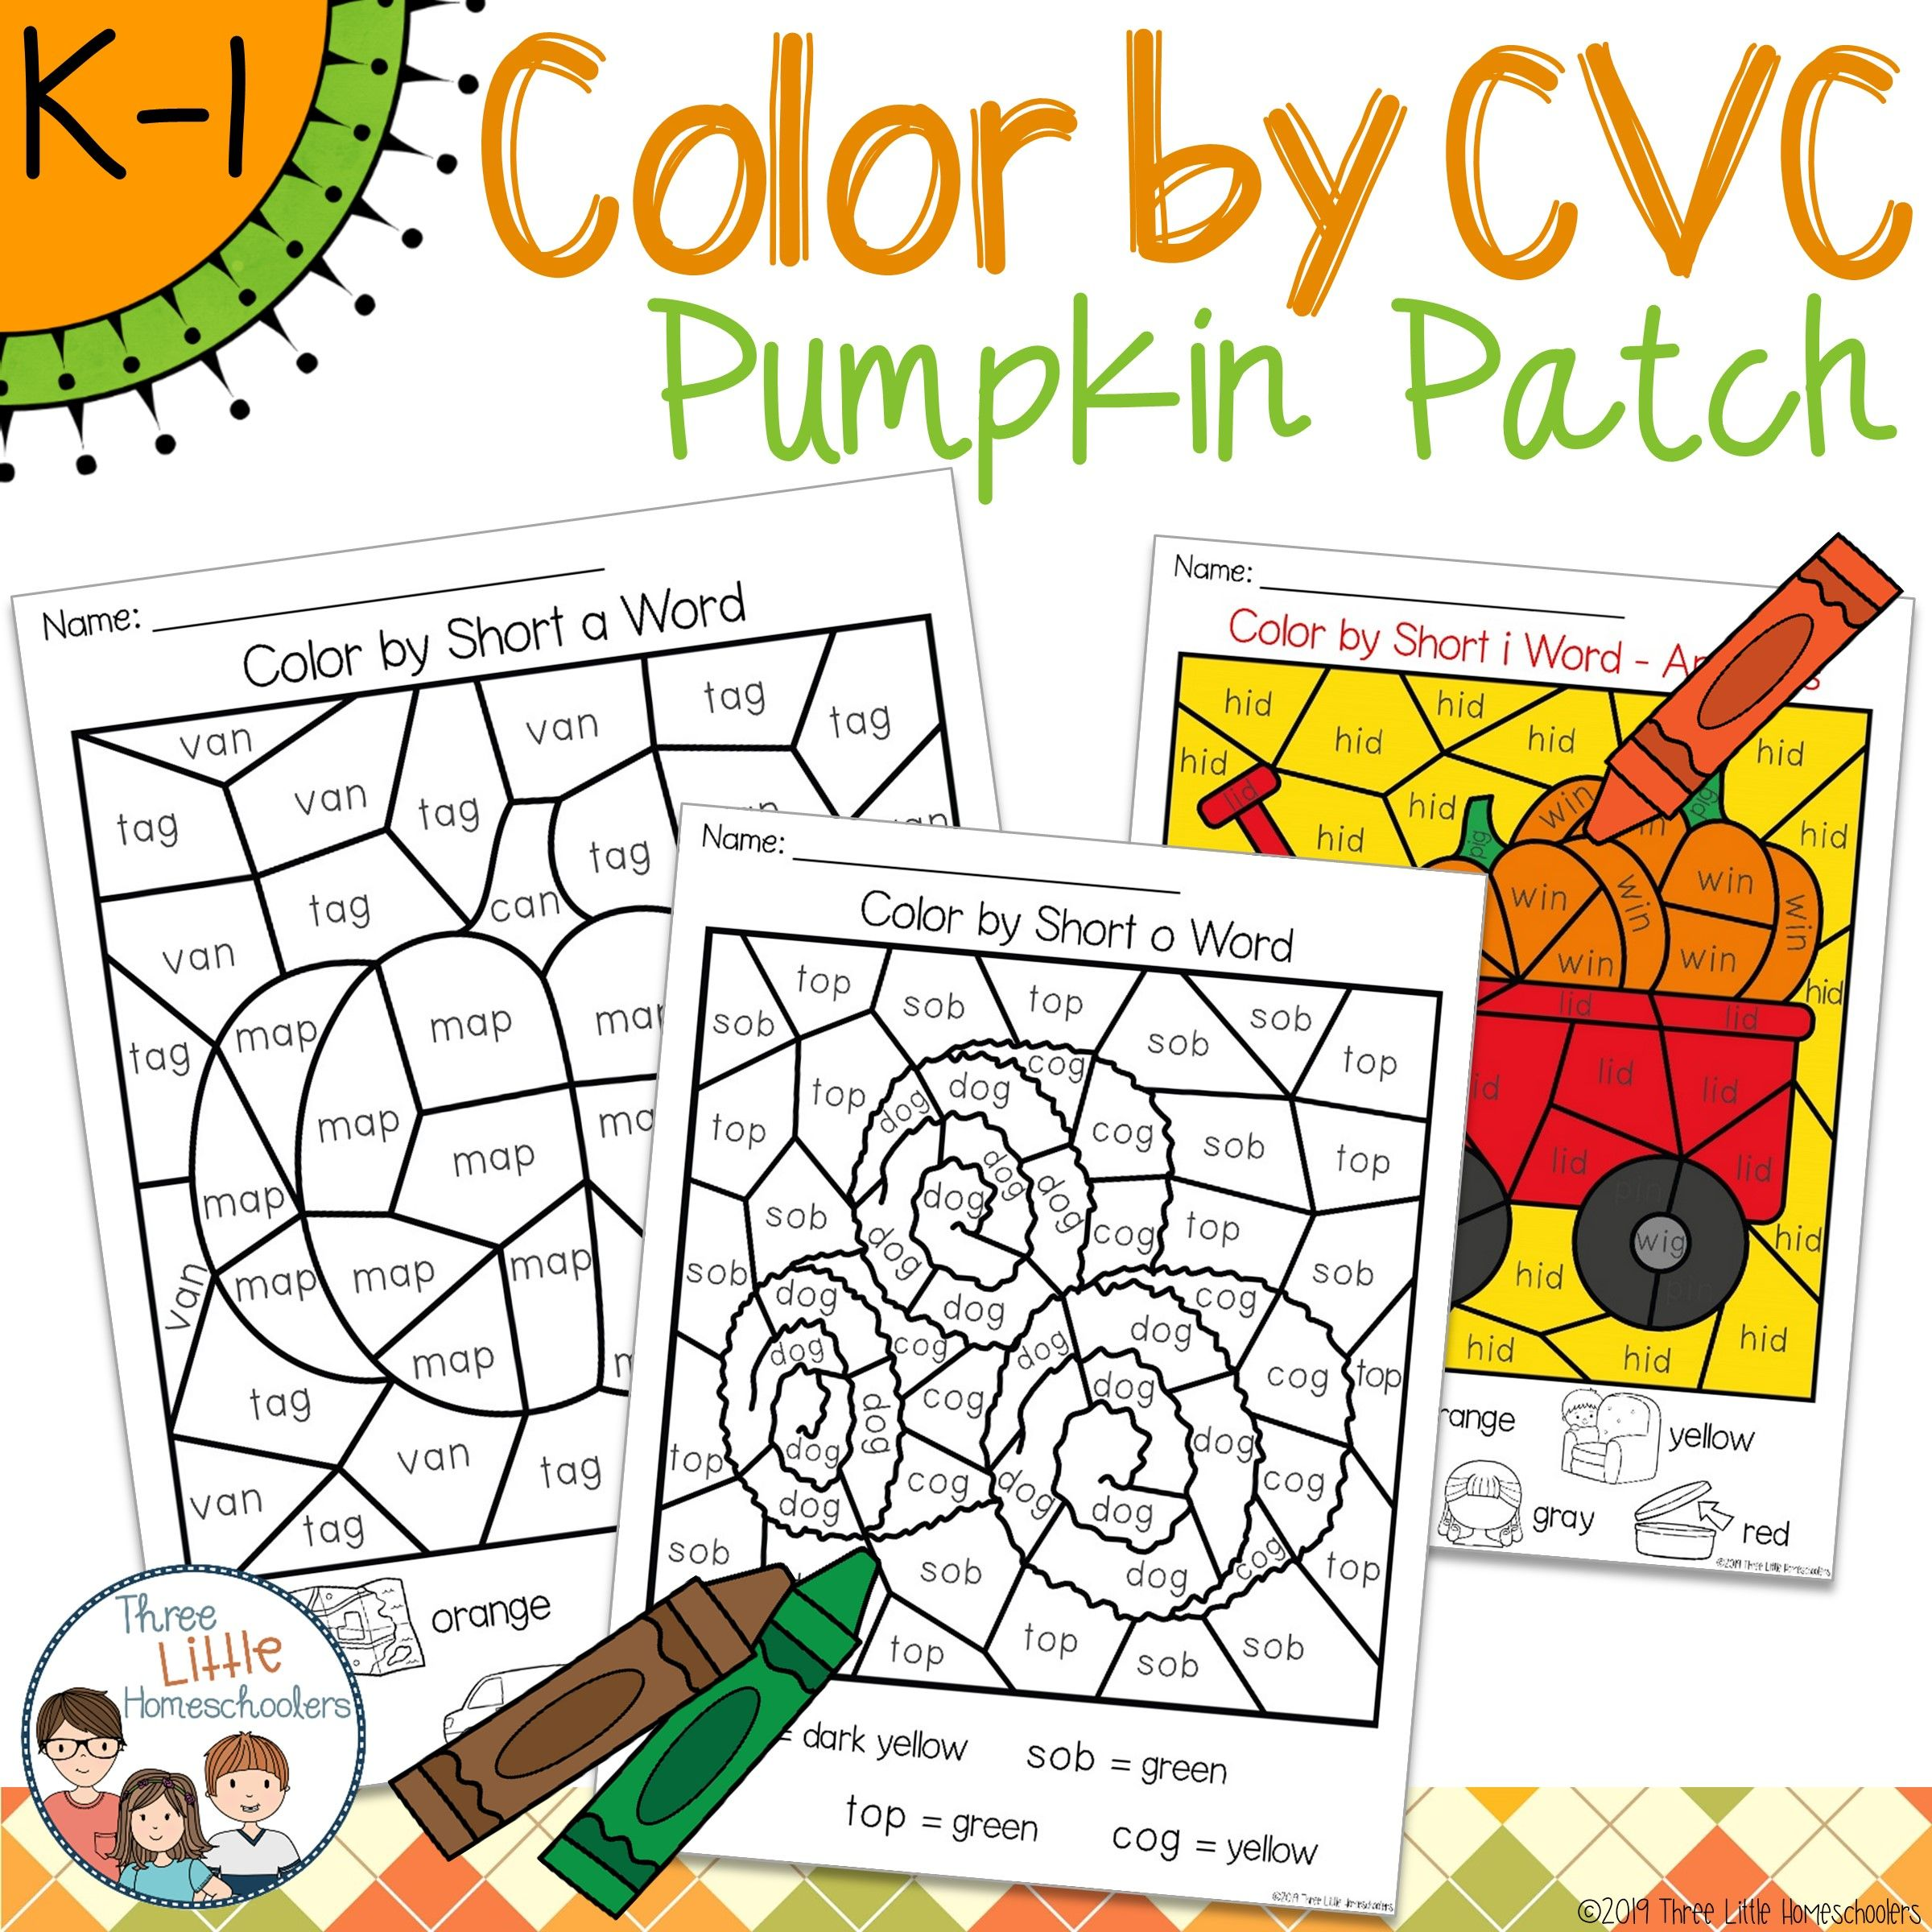 Pumpkin Patch Color By Cvc Word Puzzles Covering Short A